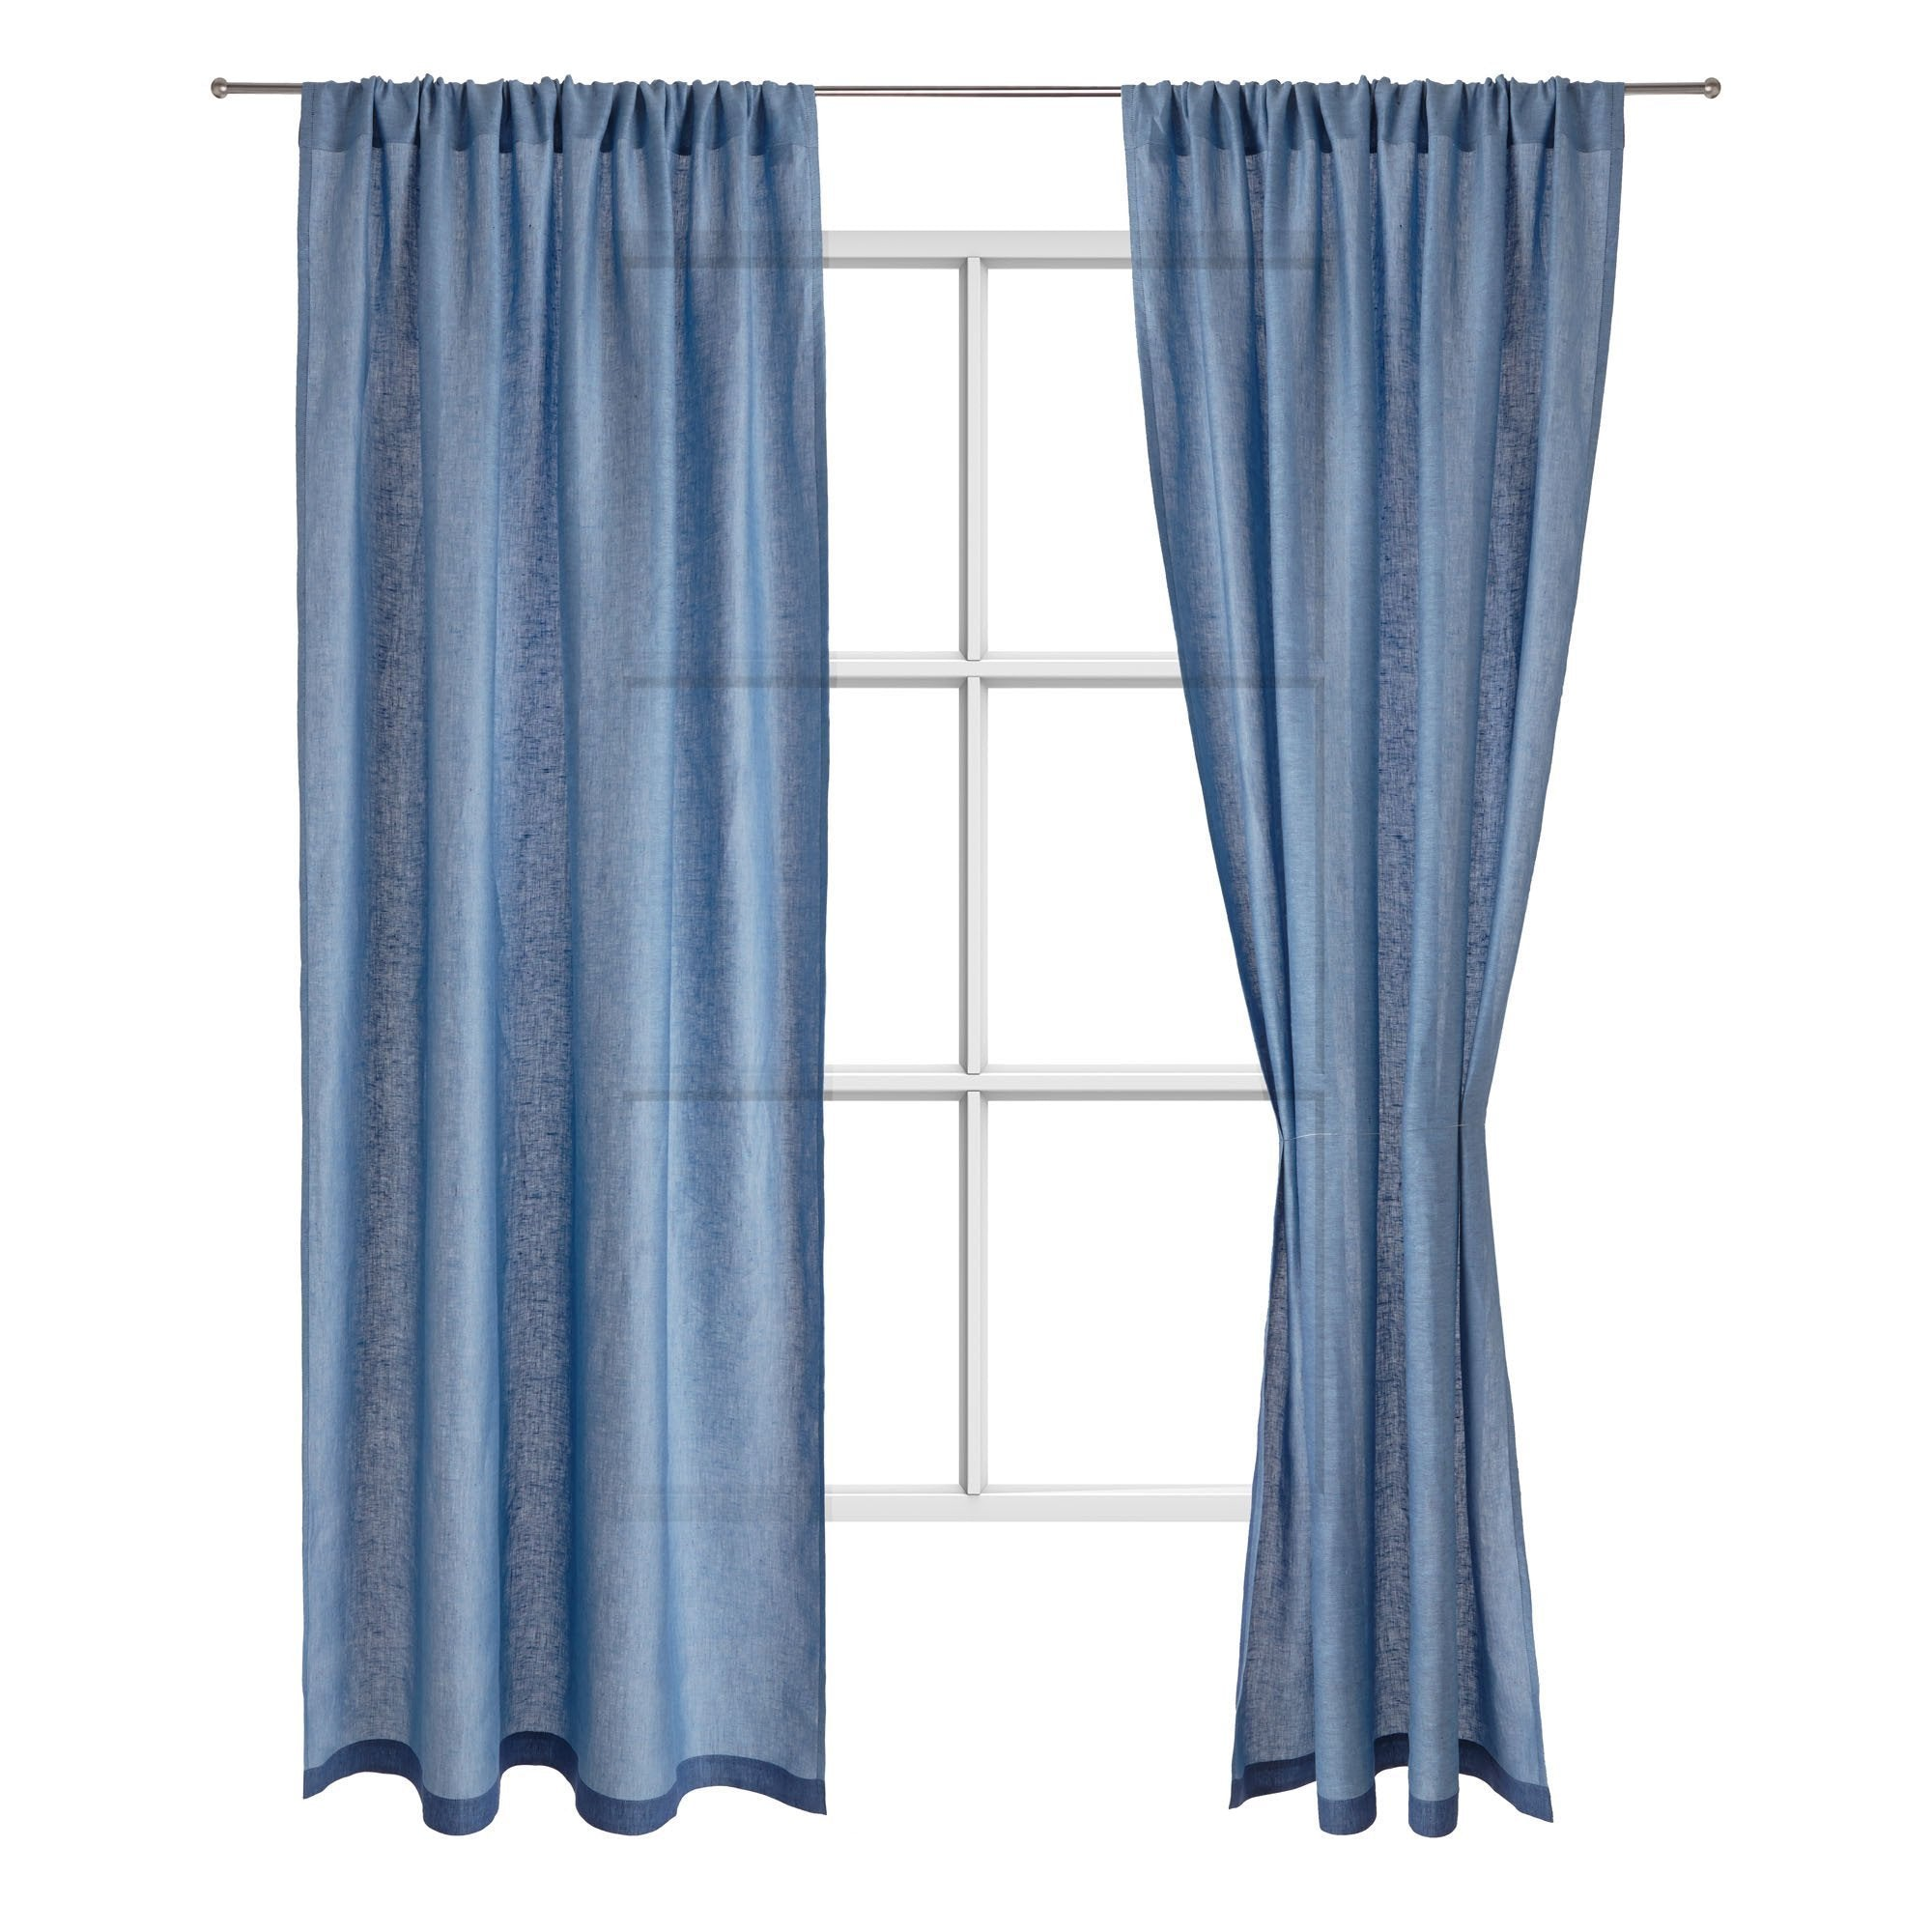 Alatri curtain, dark blue & light blue, 100% linen